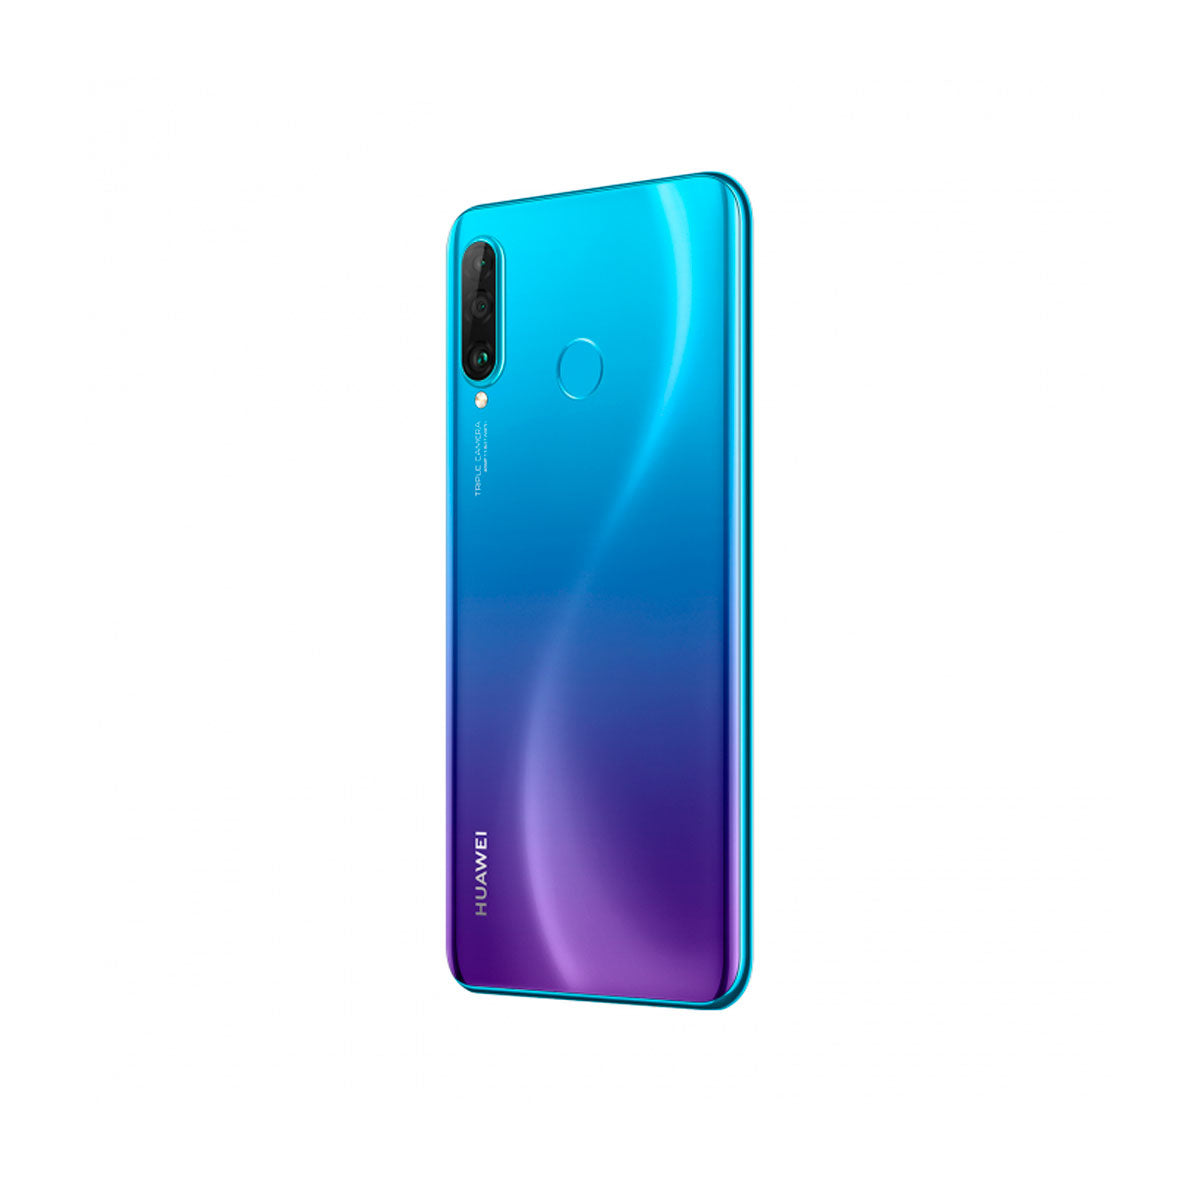 Smartphone Huawei P30 Lite New Edition 6GB 256GB 6.15